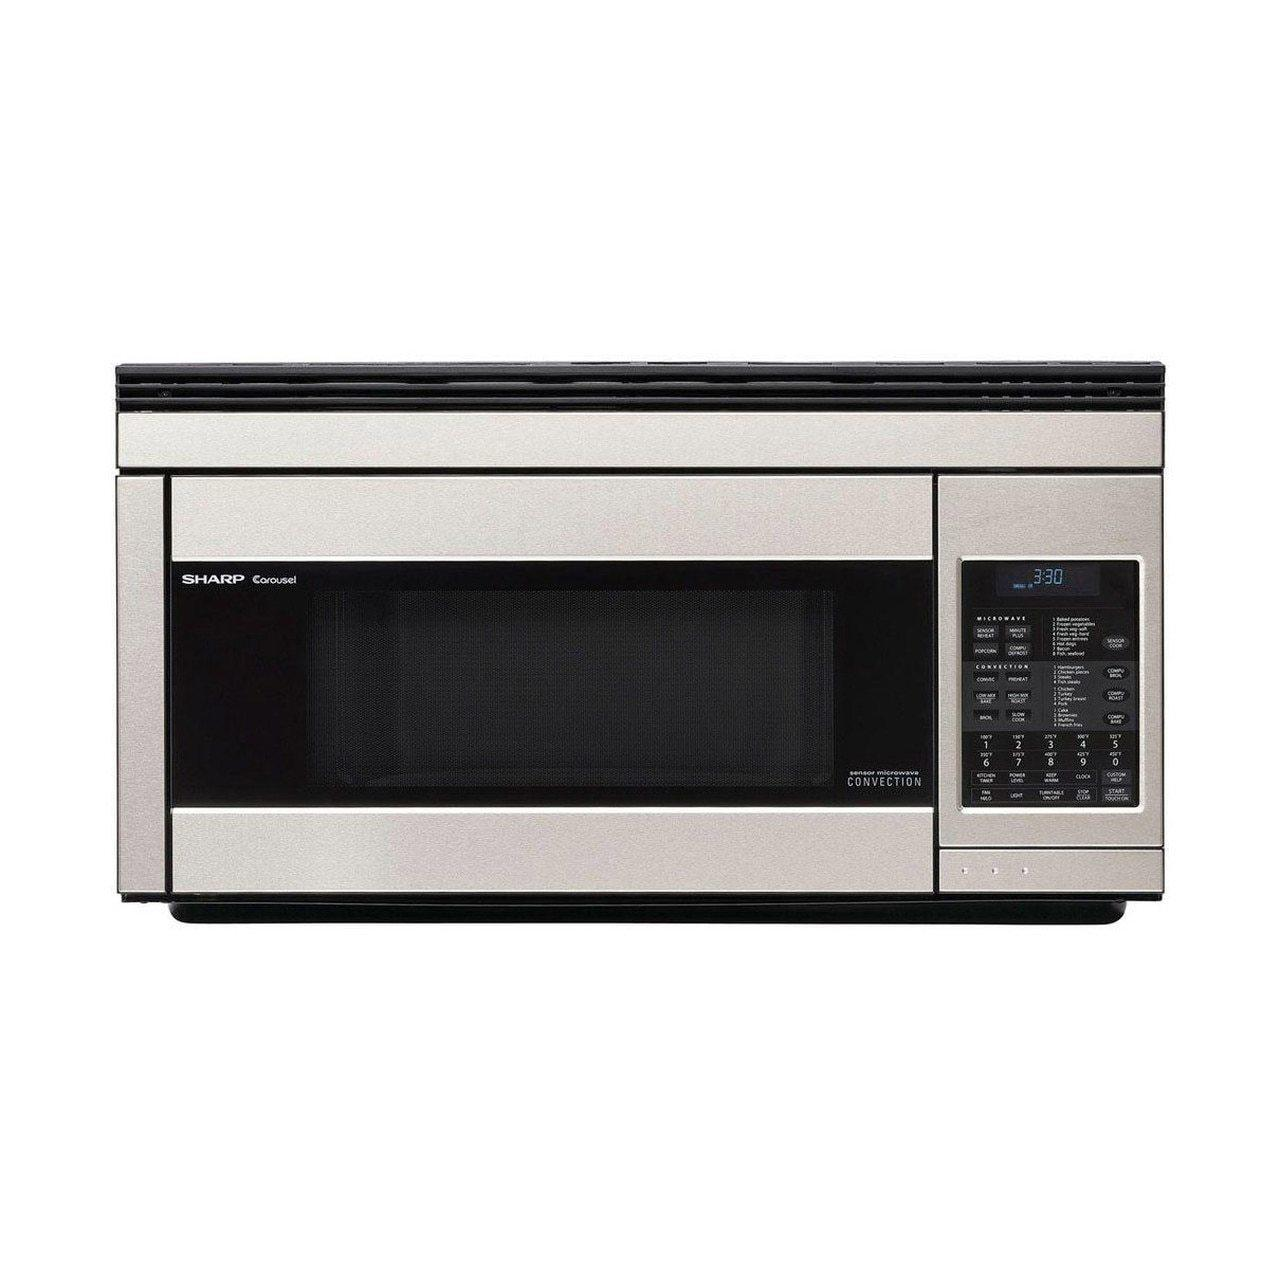 Sharp1.1 Cu. Ft. 850w Sharp Stainless Steel Over-The-Range Convection Microwave Oven